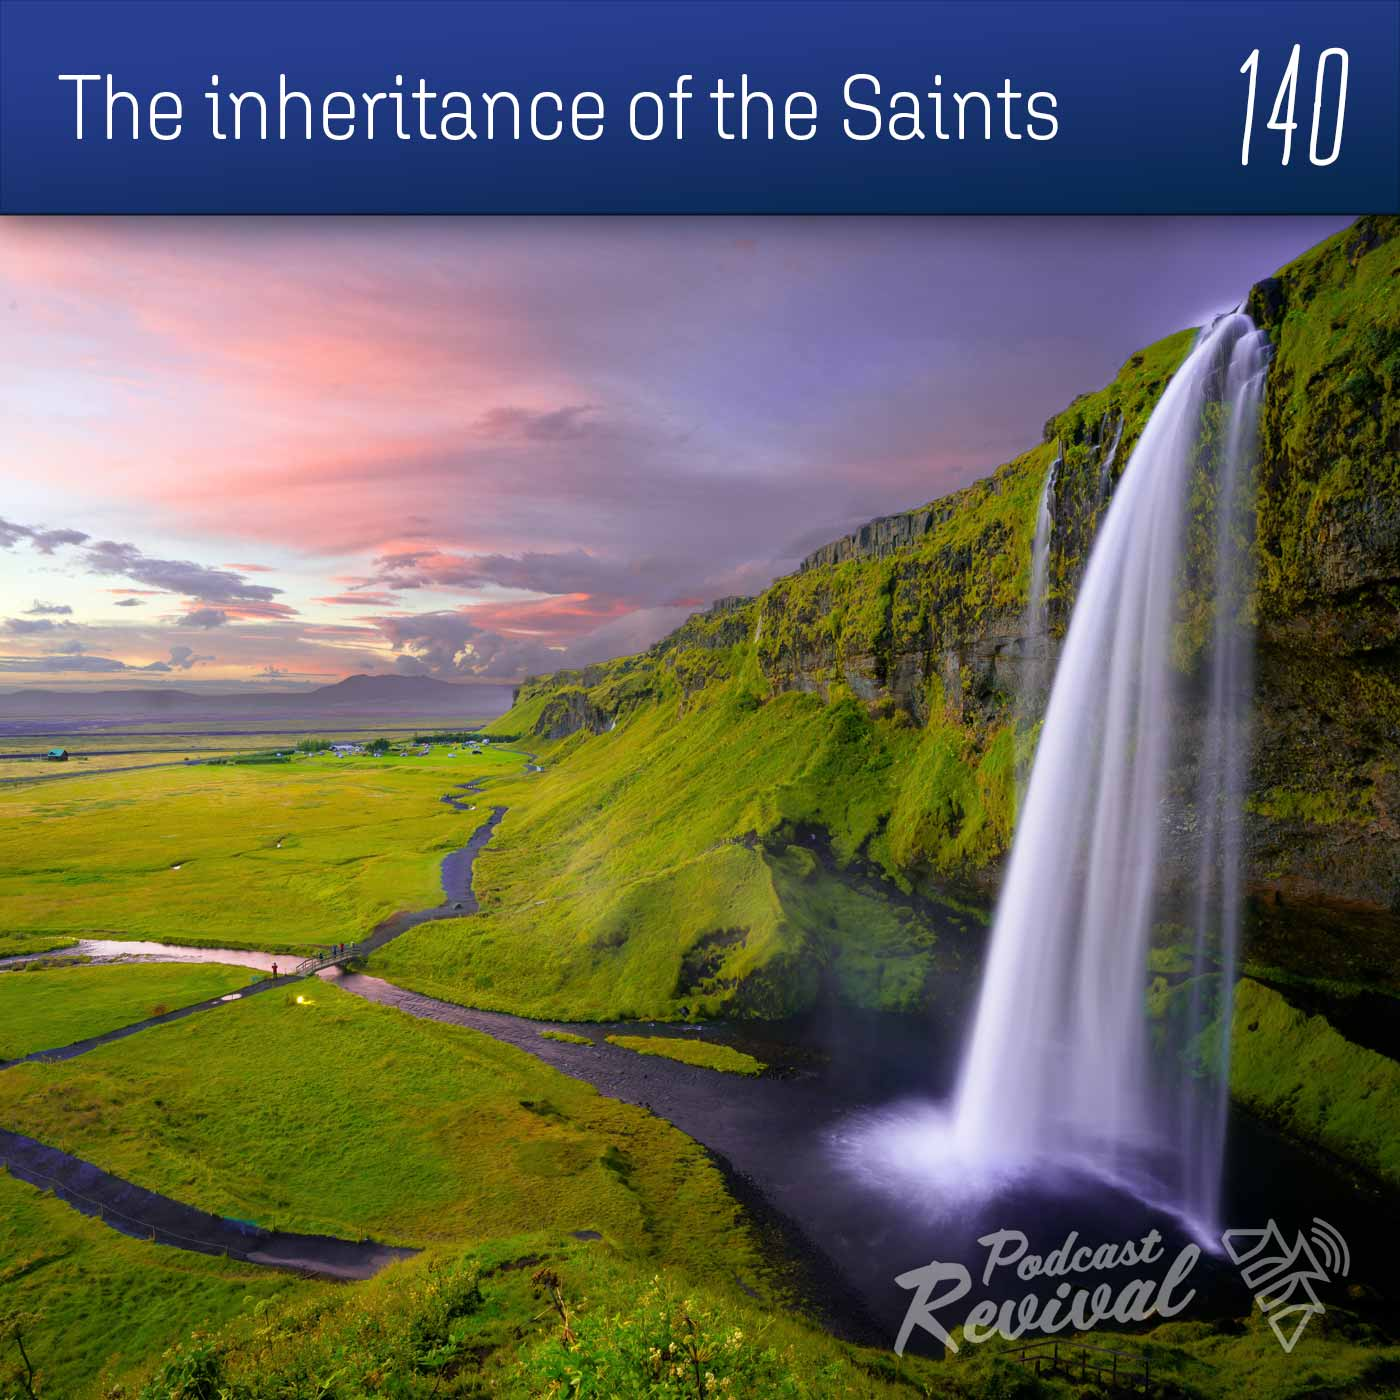 The inheritance of the Saints